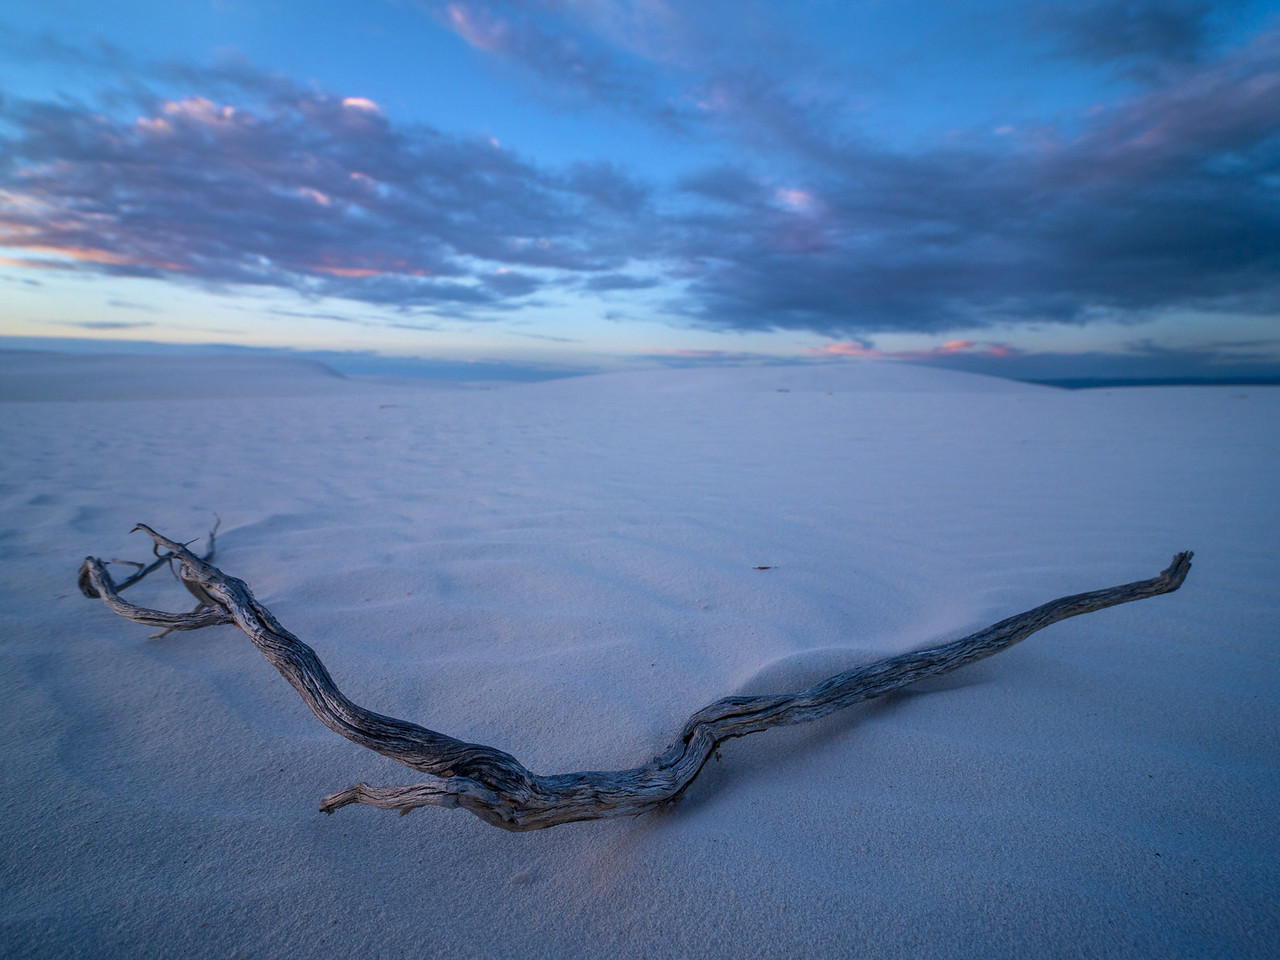 Stick at White Sands National Monument in New Mexico